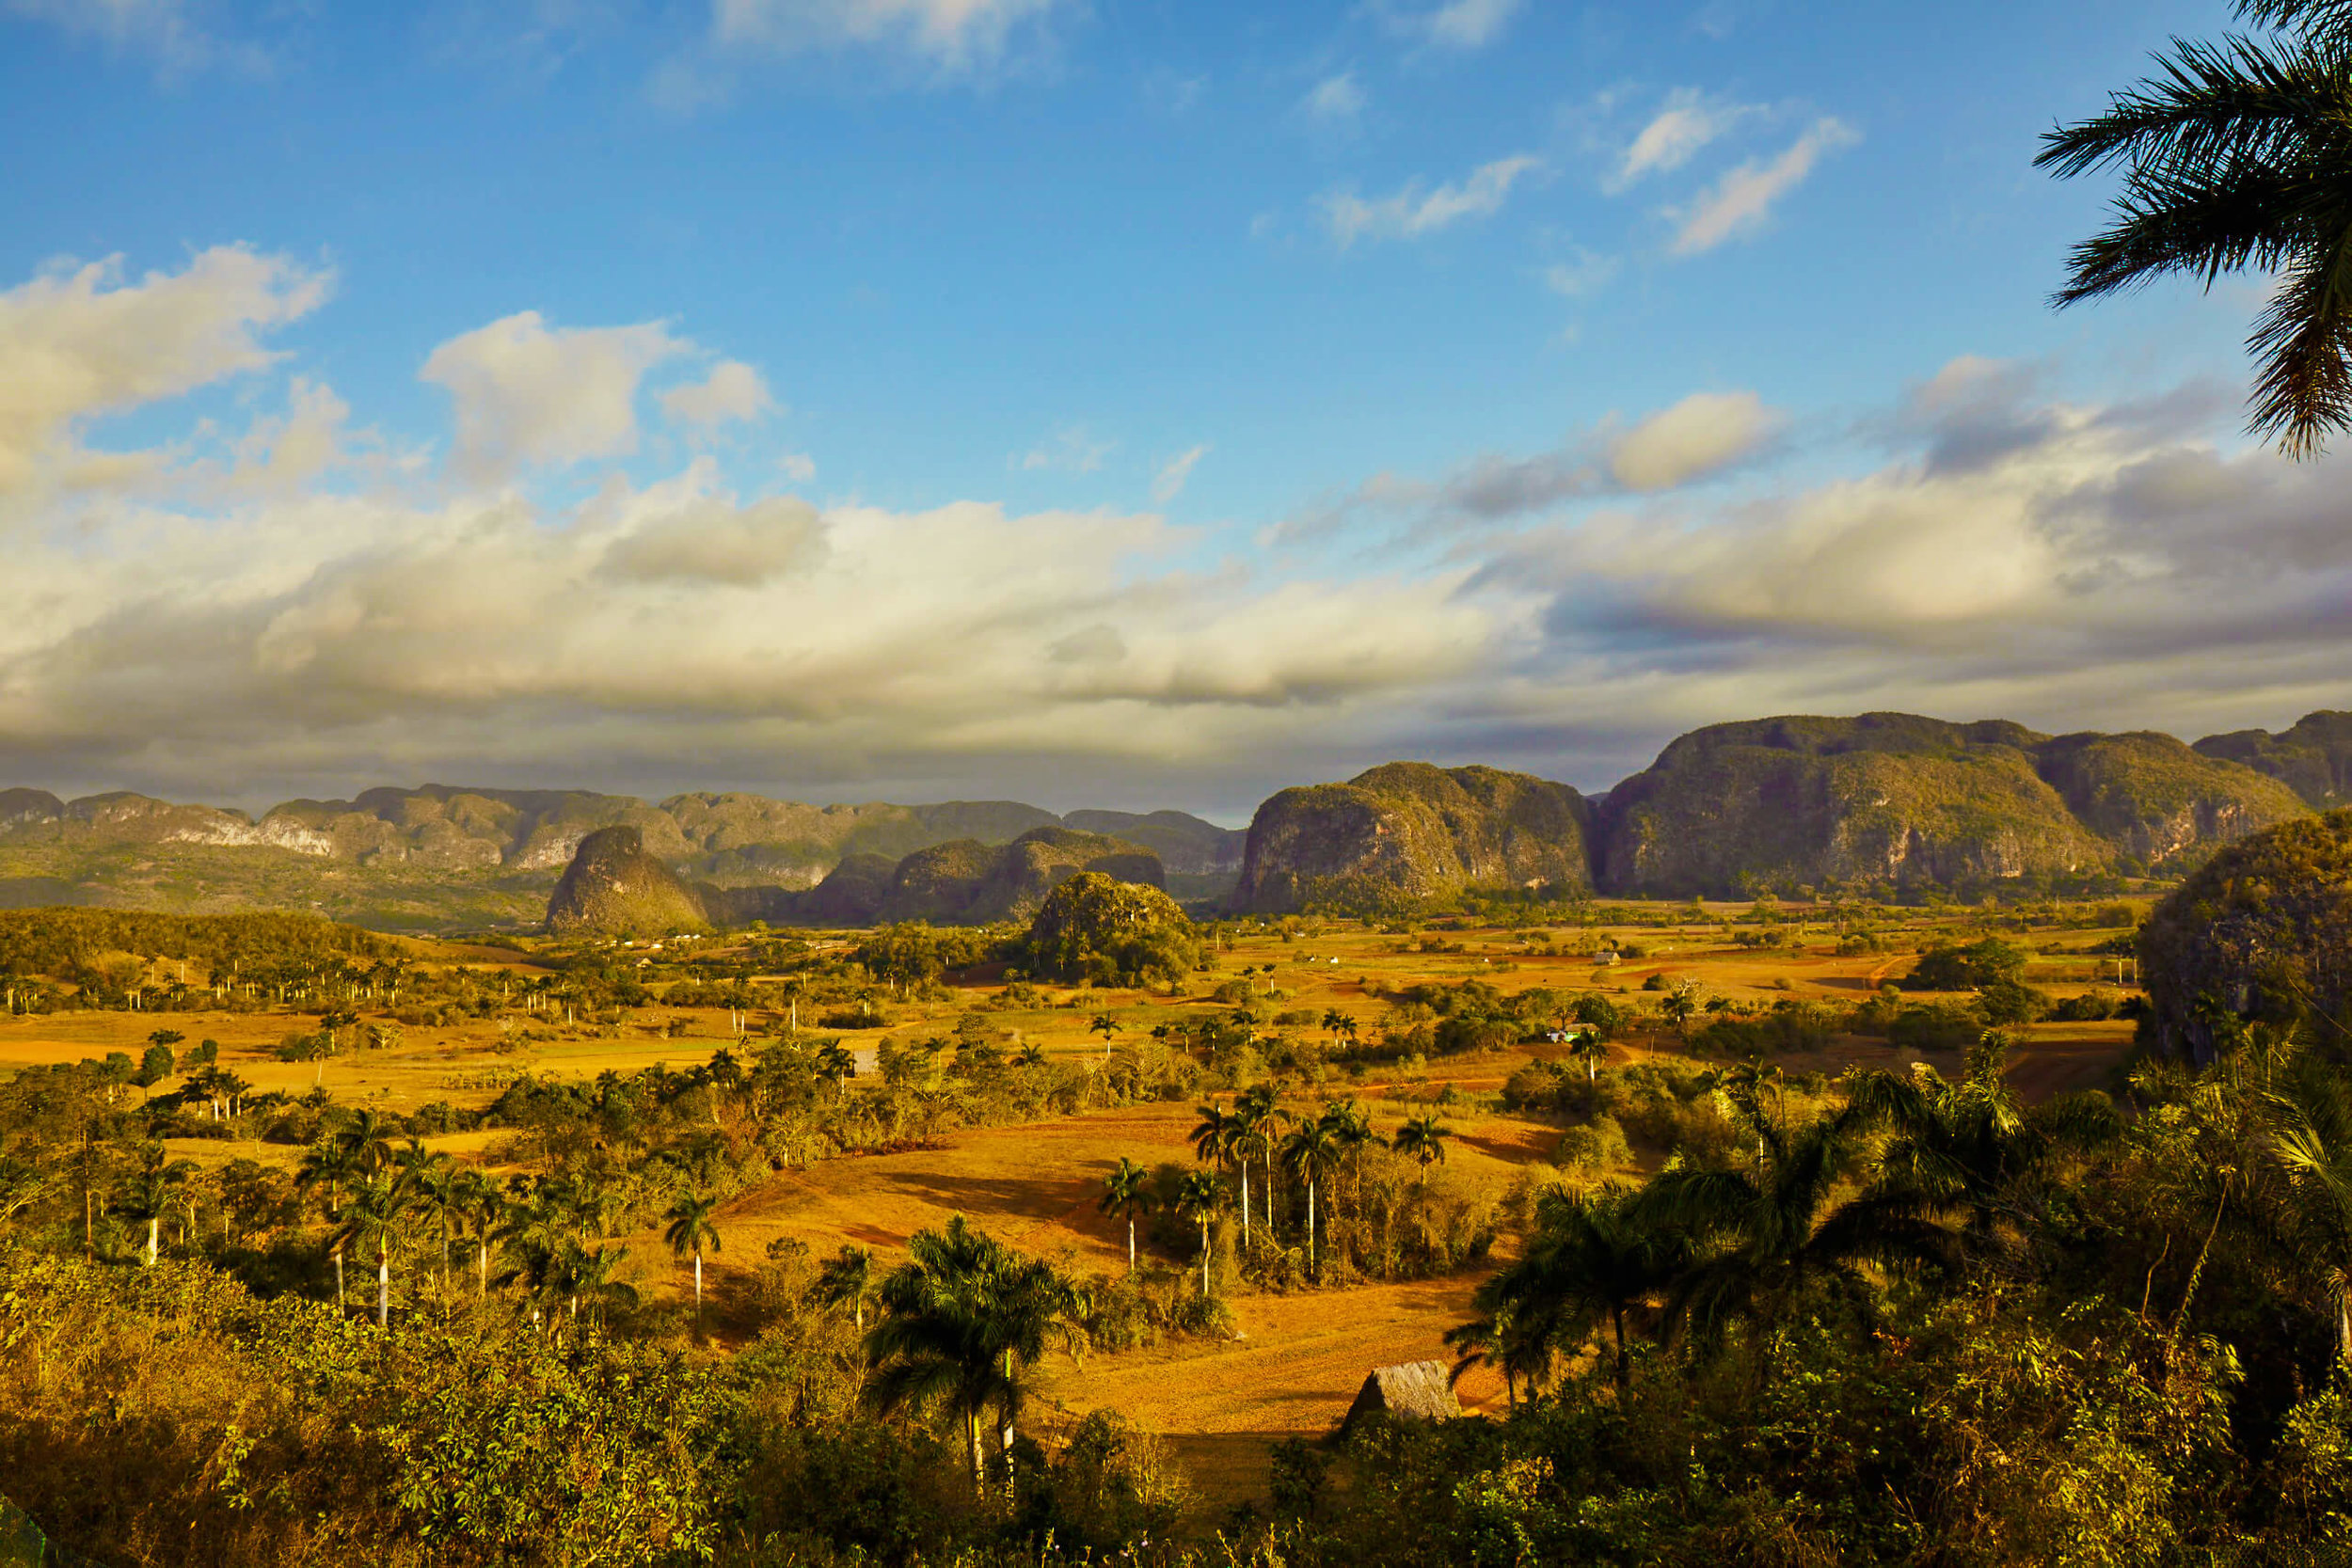 CUBA-CANDELA-countryside-vinales-overlook